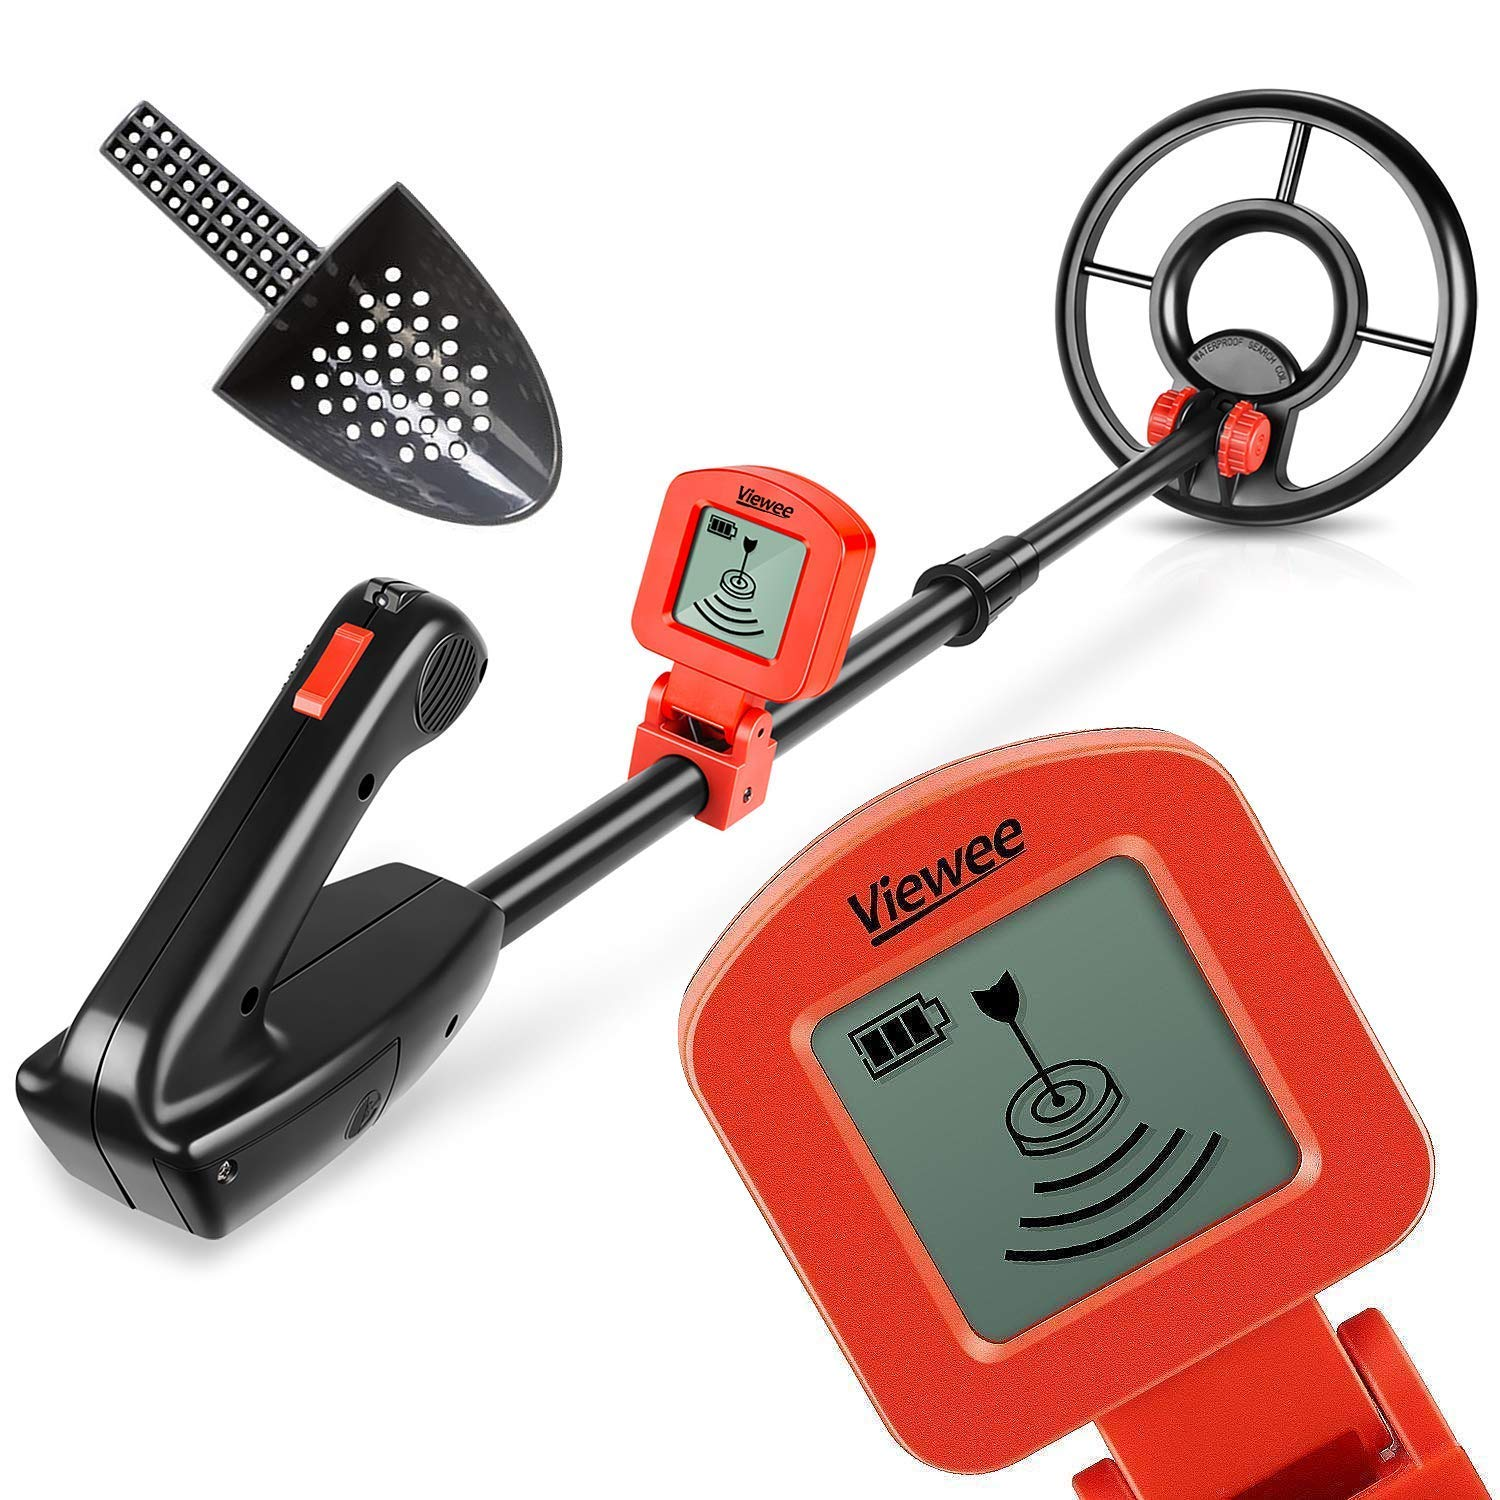 Viewee Lightweight Metal Detector With Waterproof Search Coil And Fun To Findcoins At The Beach Lcd Display Suitable For Junior Beginner Shovel As Family Leisure